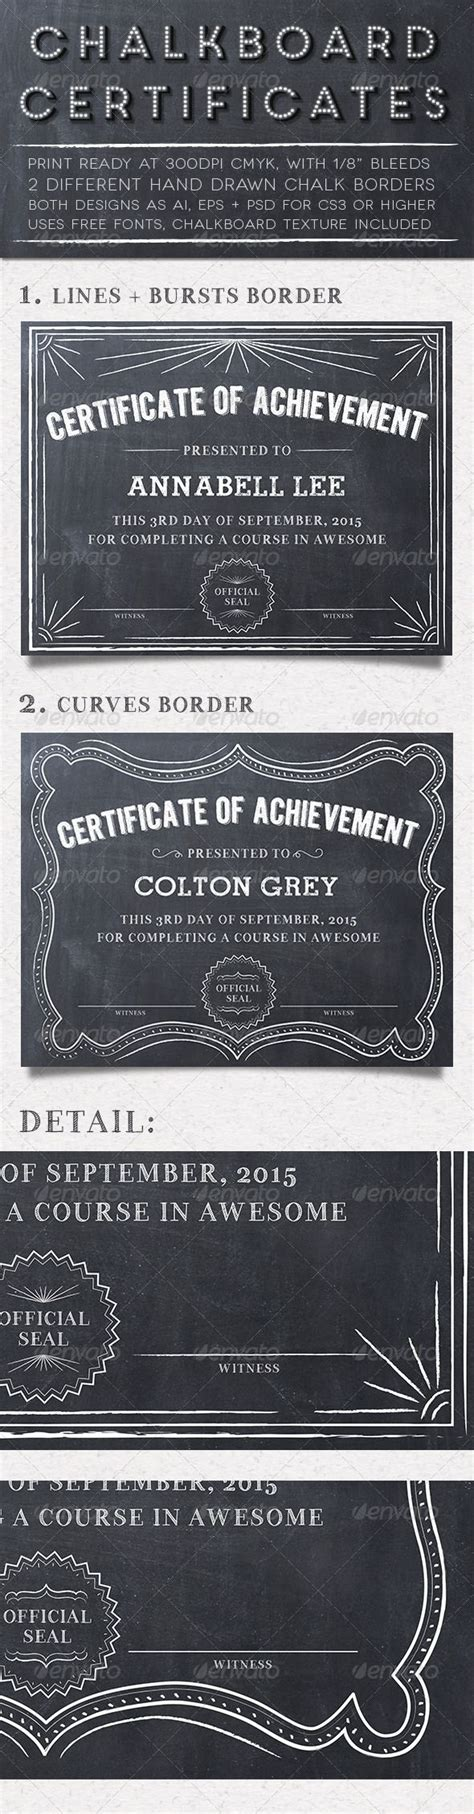 certificate design brushes photoshop 43 best images about certificates on pinterest brush set